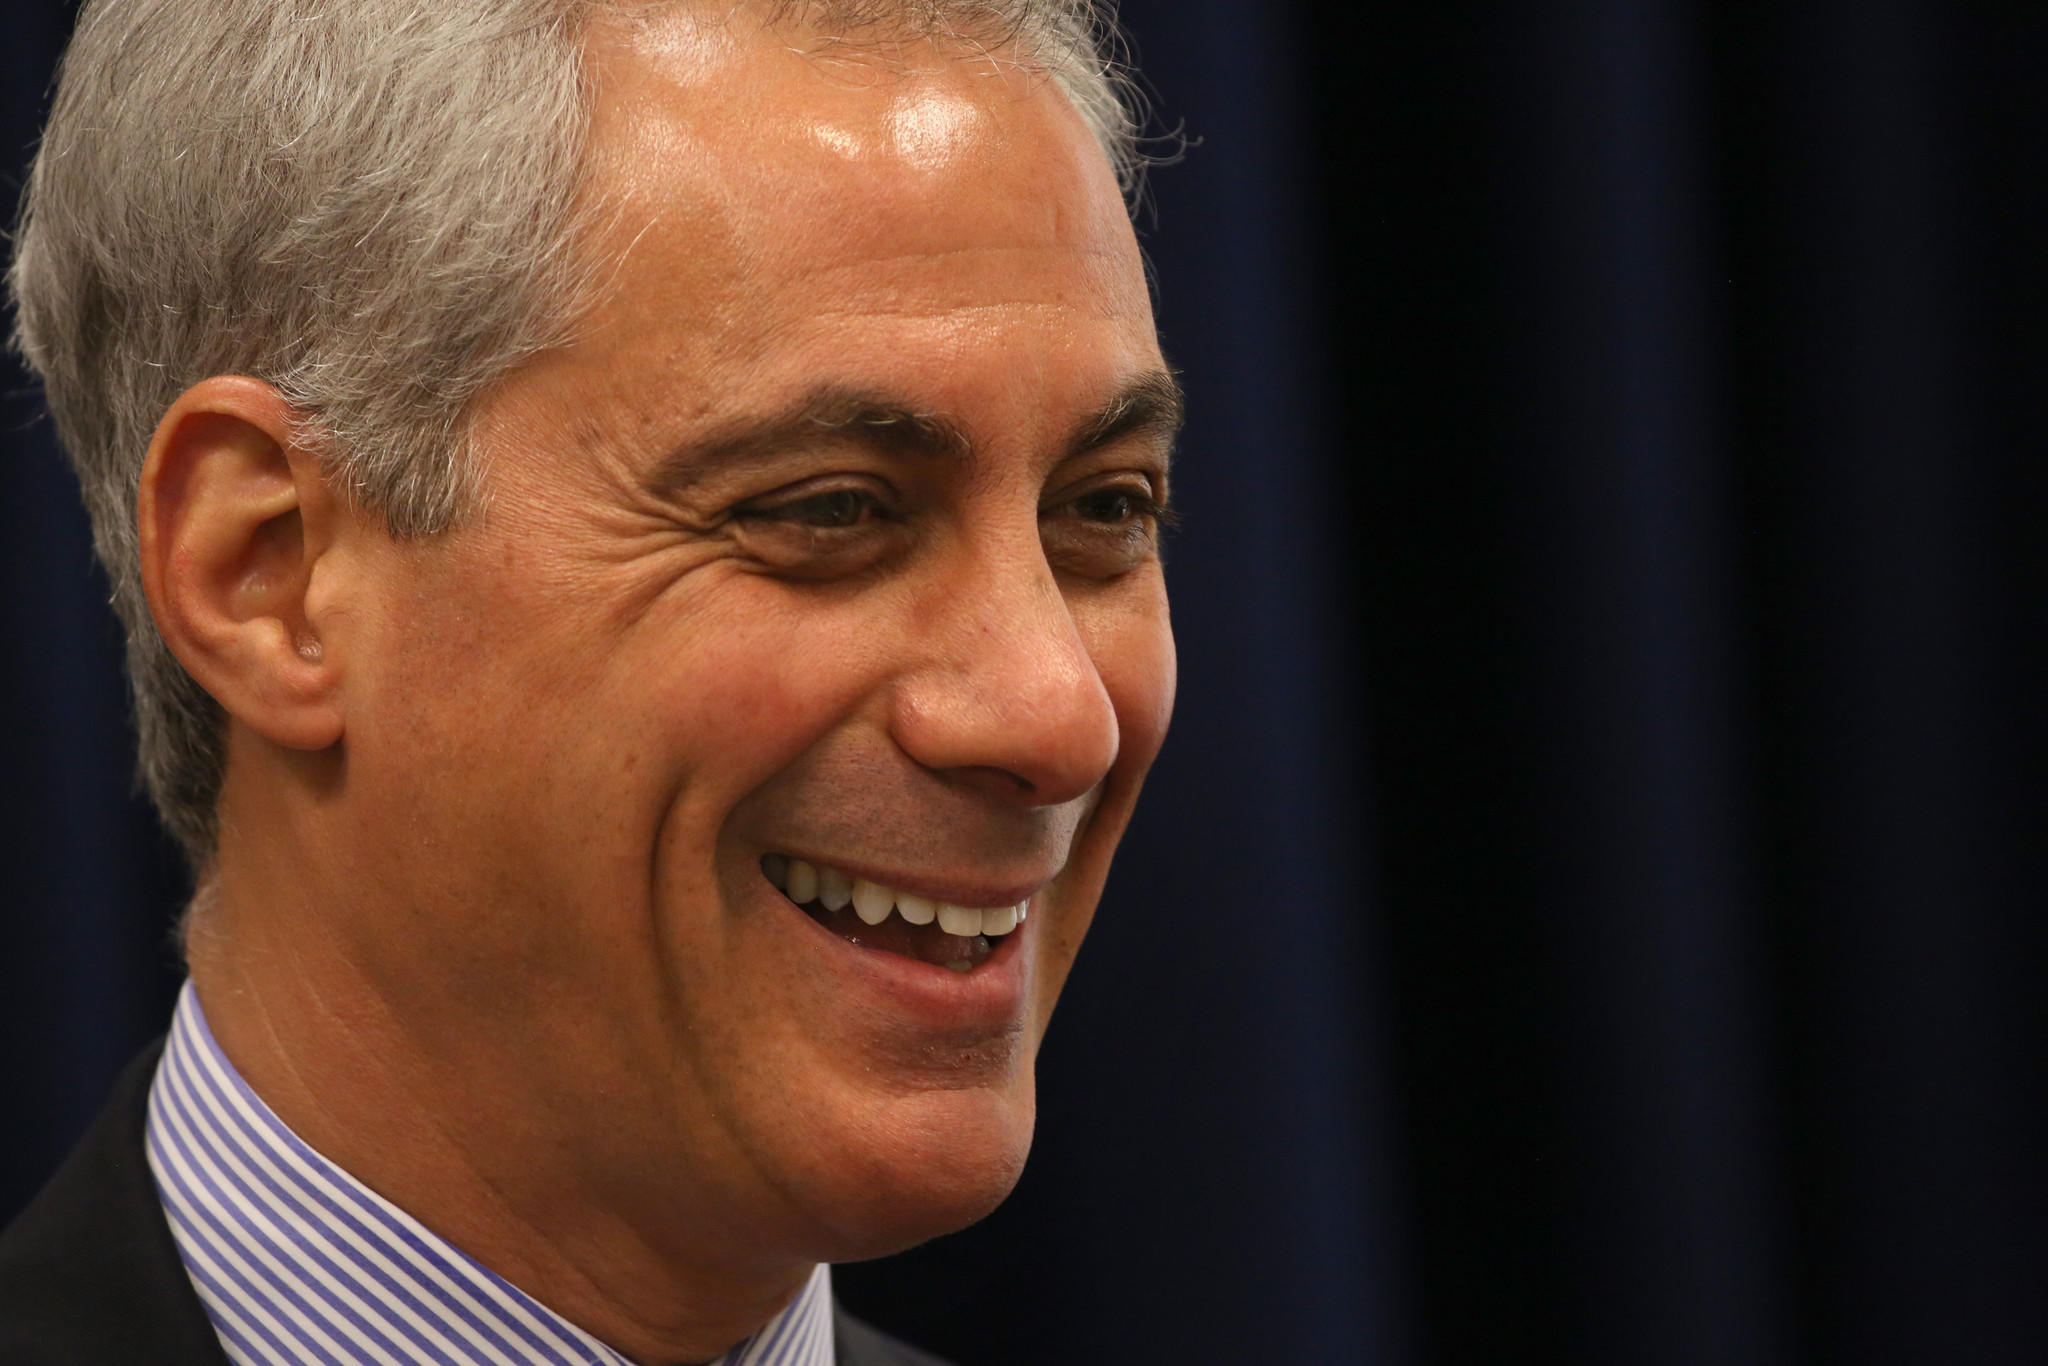 Mayor Emanuel at a Chicago City Council meeting last month.